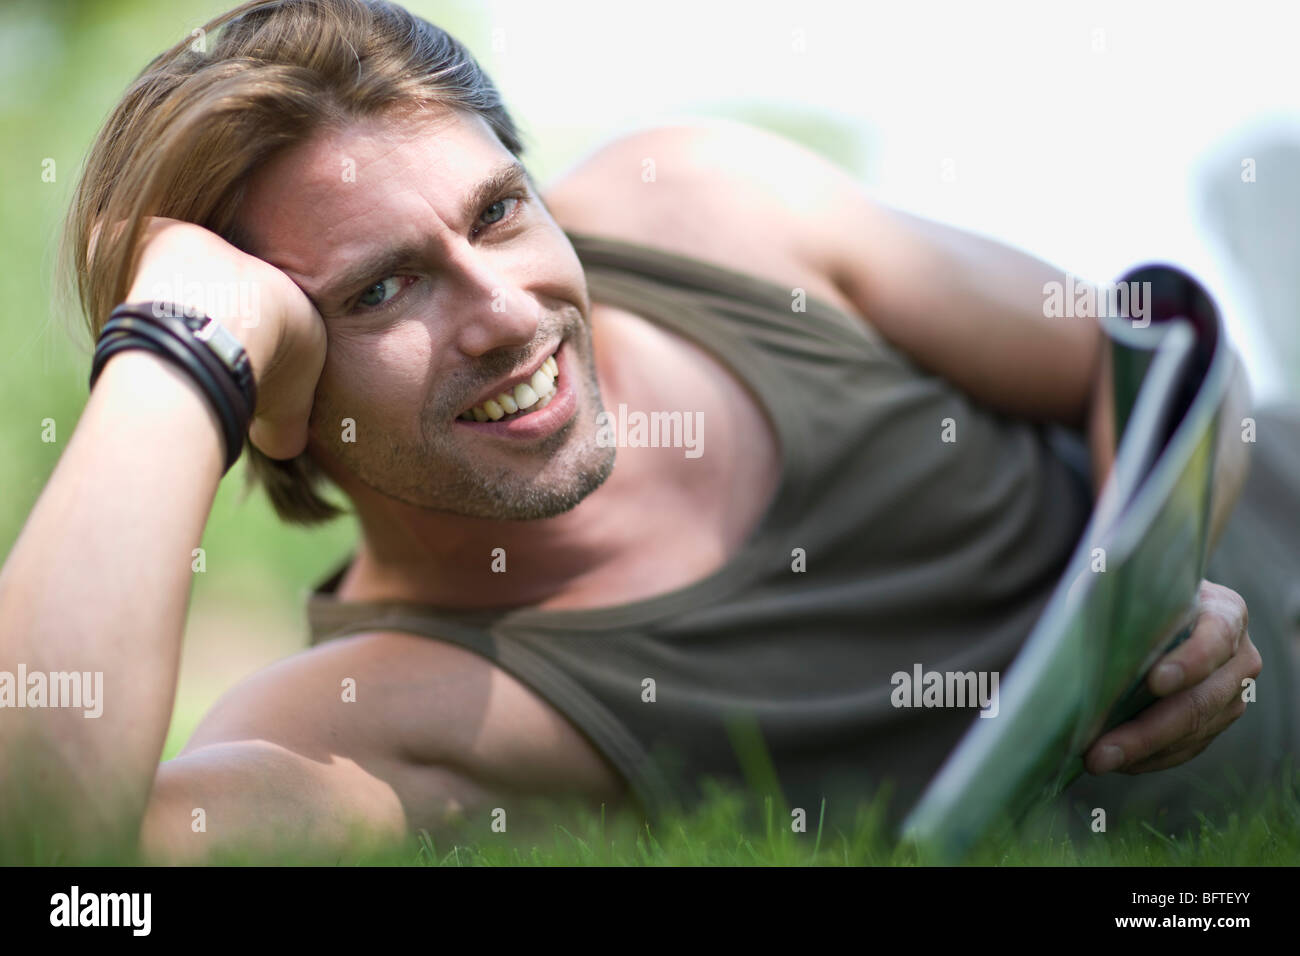 man lying in the lawn - Stock Image